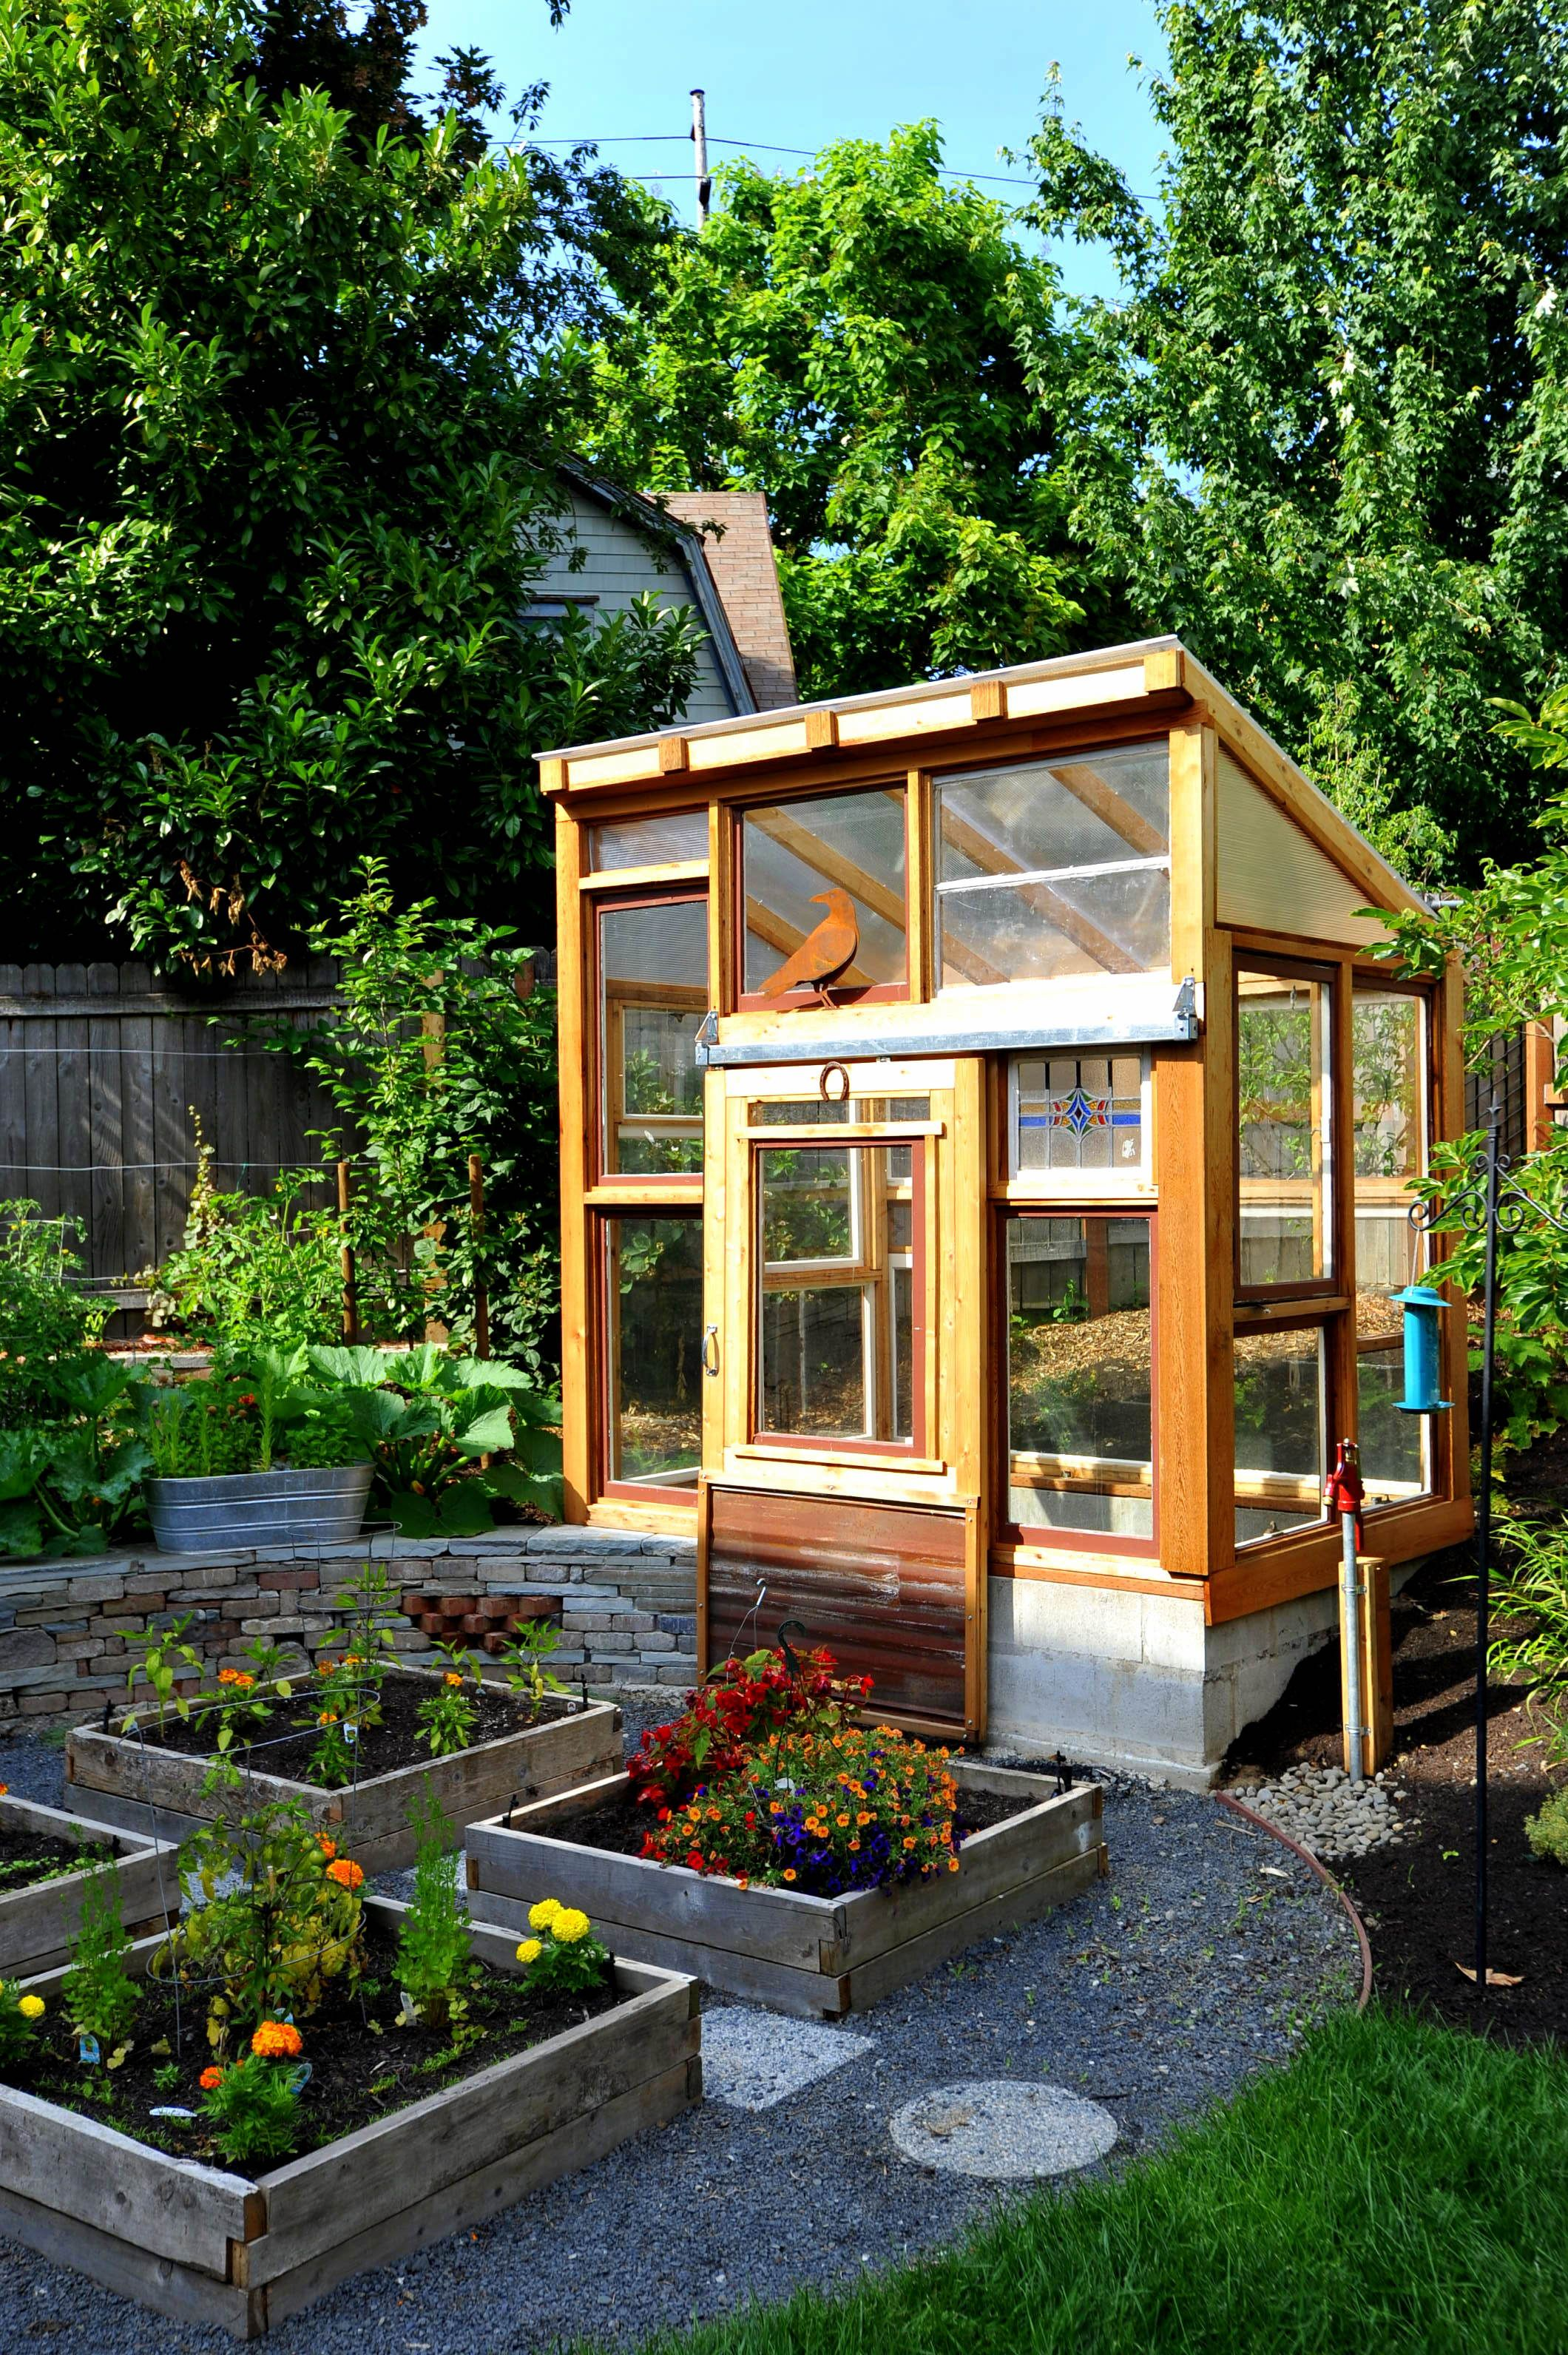 greenhouse and raised bed vegetable garden surrounded by perennial